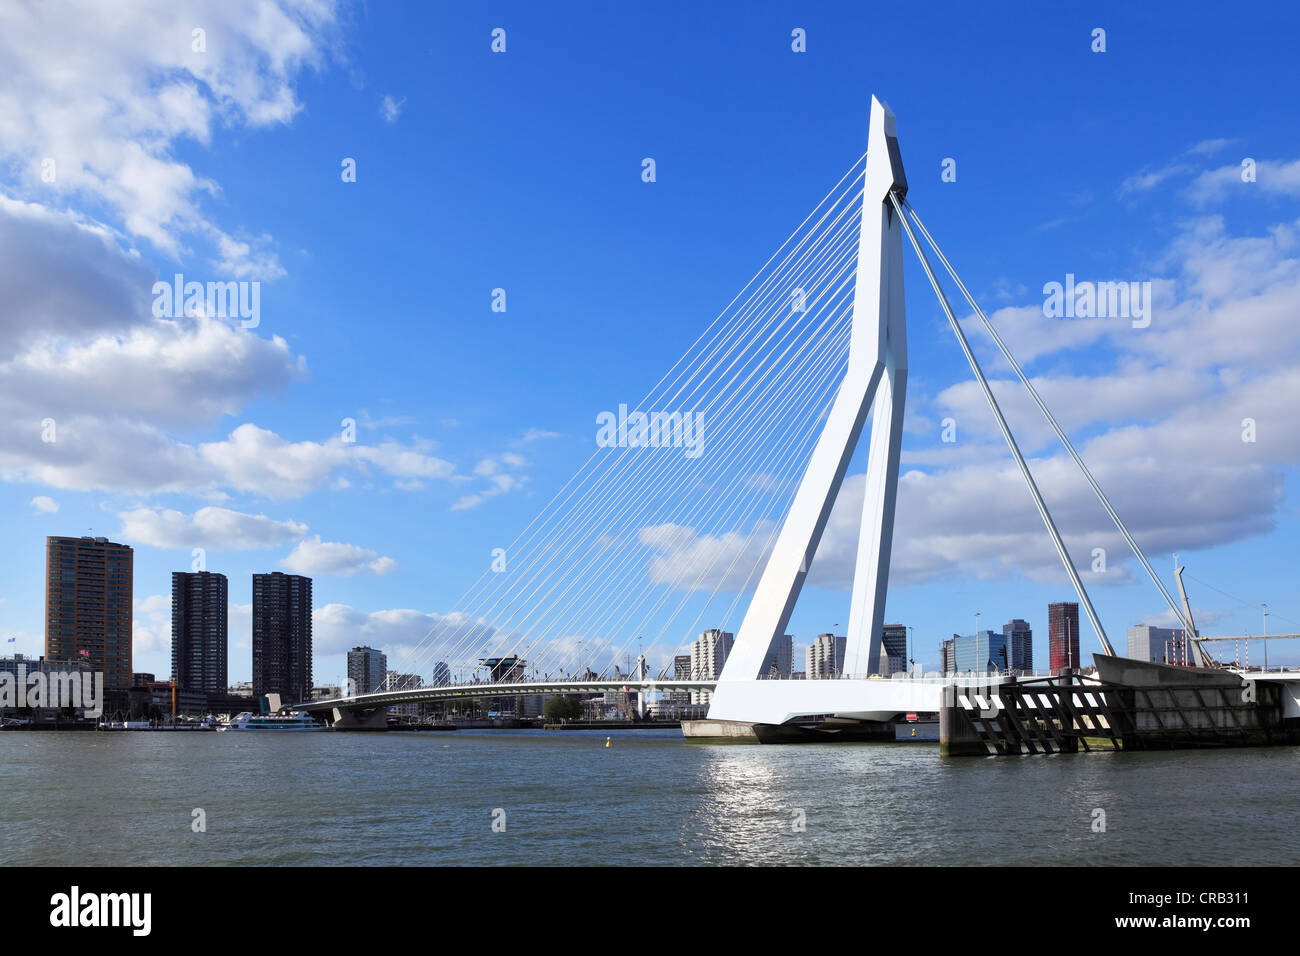 Erasmus Bridge, a cable-stayed bridge, panorama in front of the skyline of Rotterdam, Holland, Netherlands, Europe Stock Photo